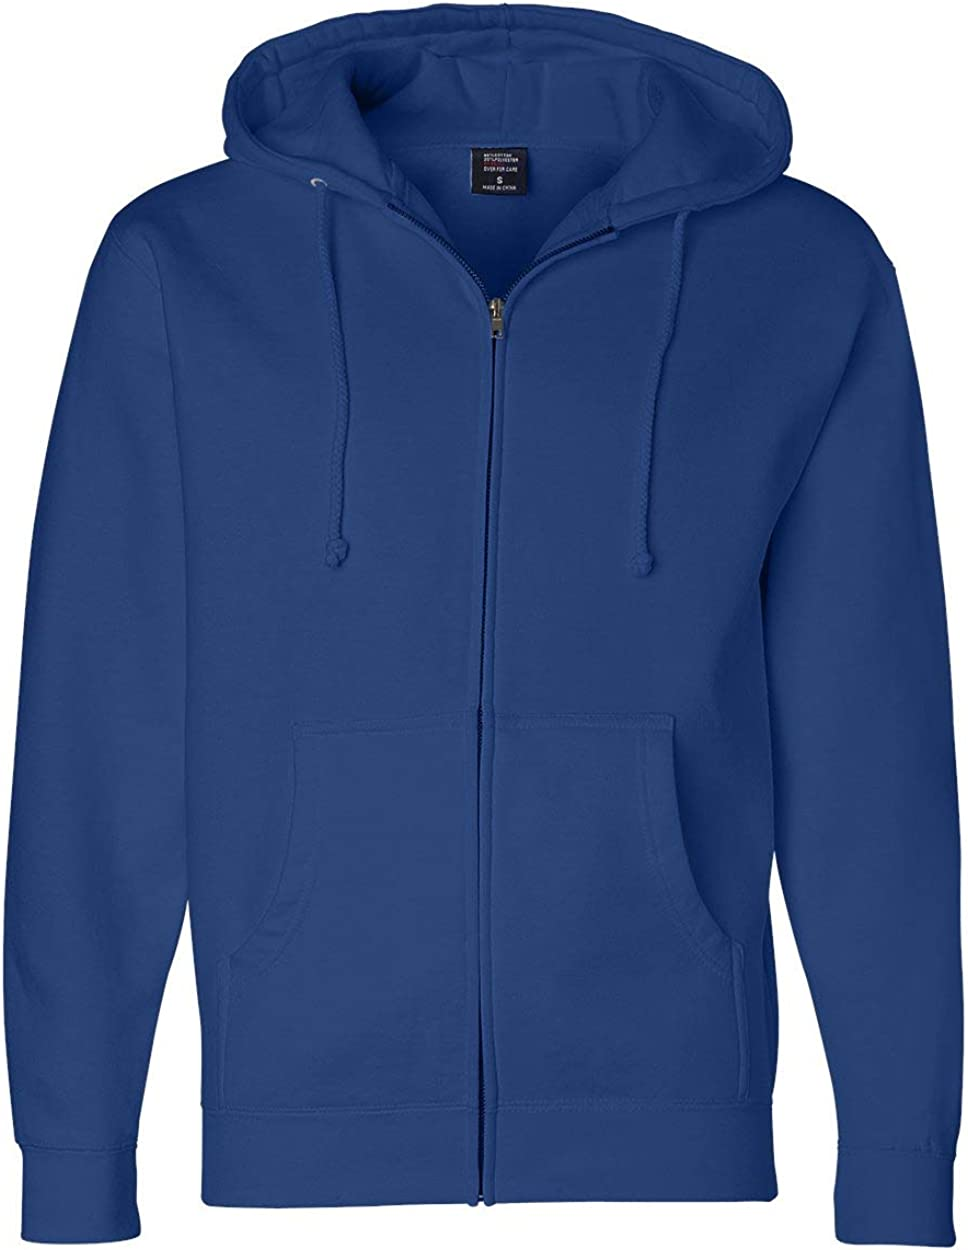 Fashionable Independent Trading Co. IND4000Z Sweatshirt sold out Full-Zip Hooded